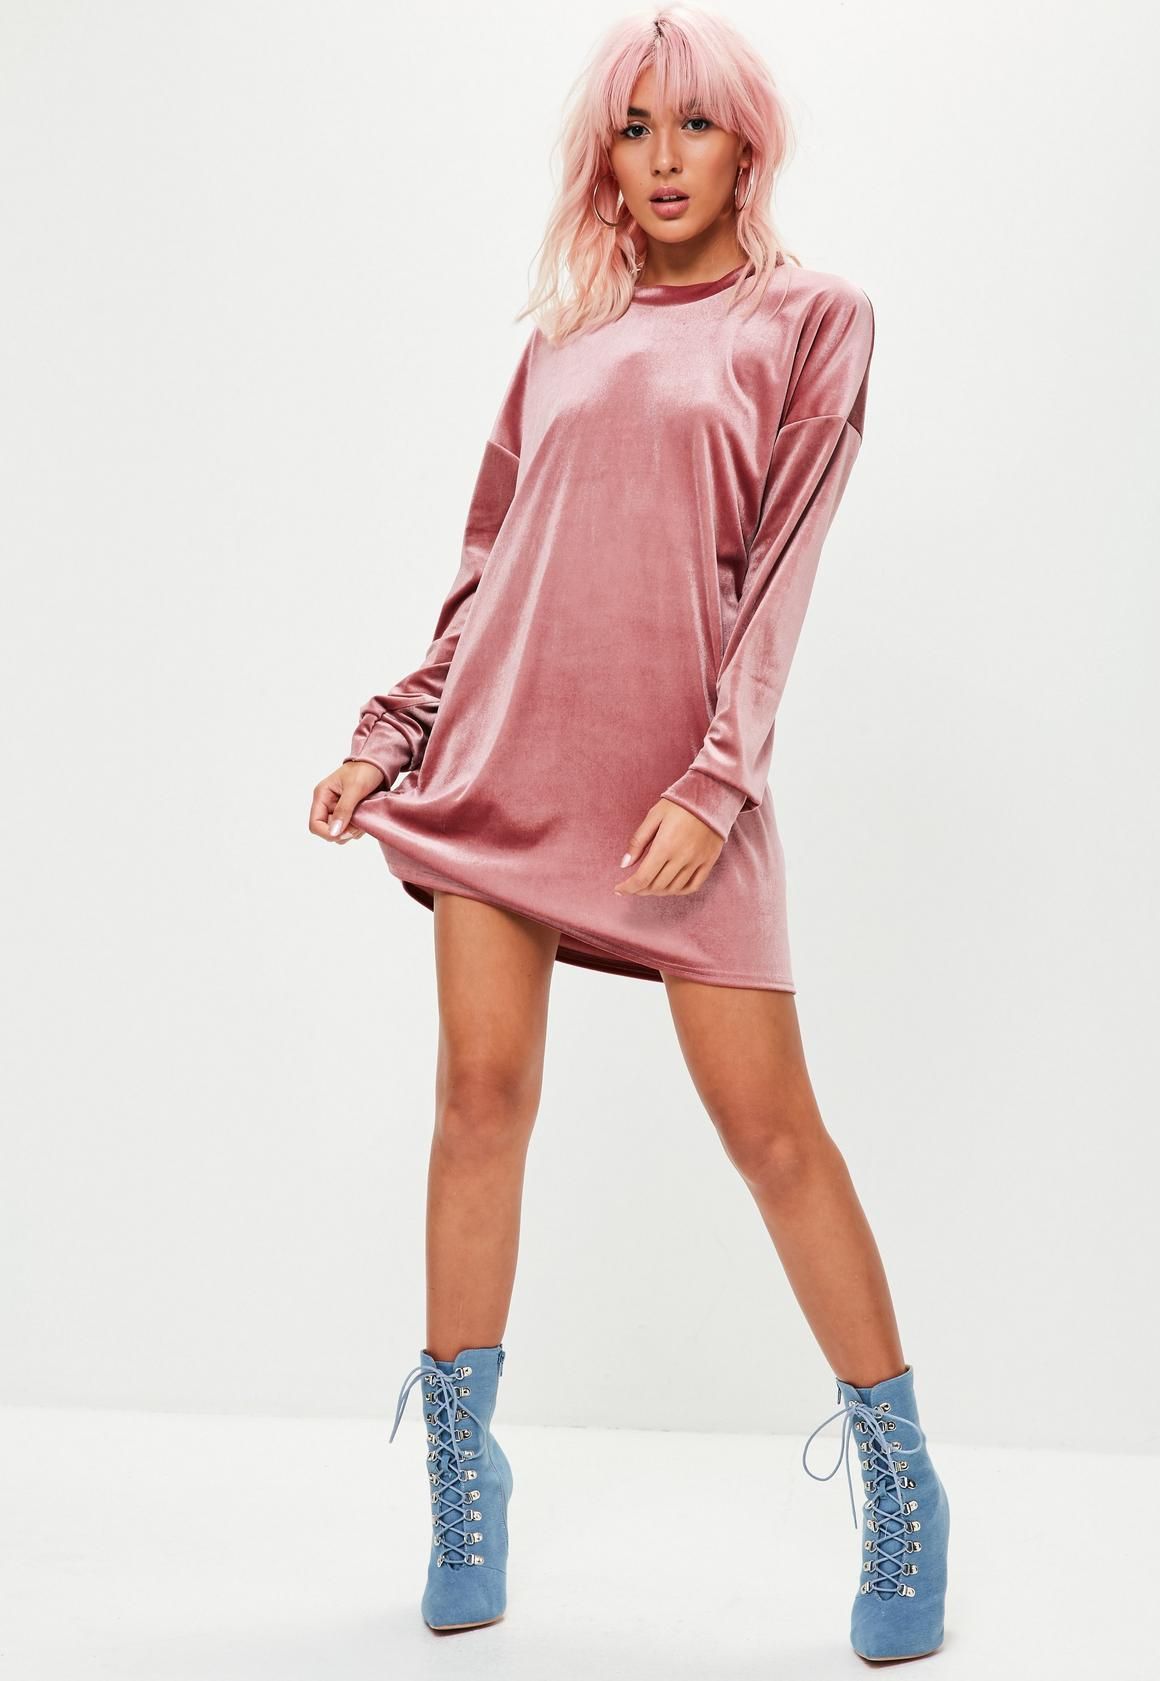 Vestido sweater de terciopelo rosa | Missguided